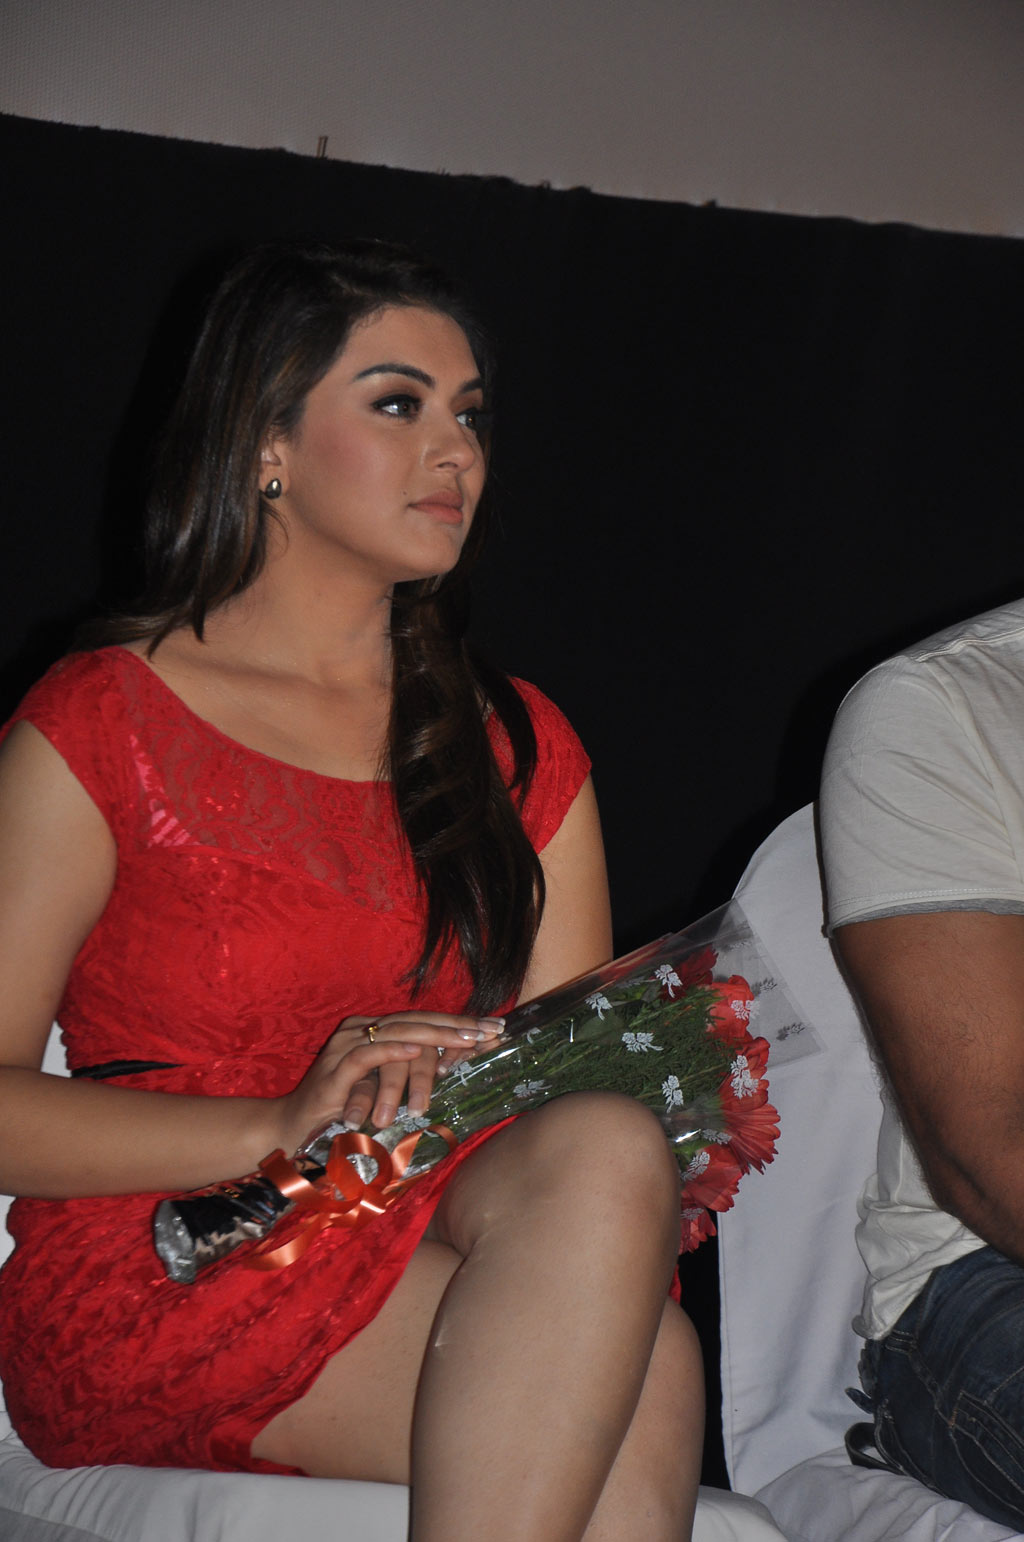 Hansika motwani high quality nude pictures sorry